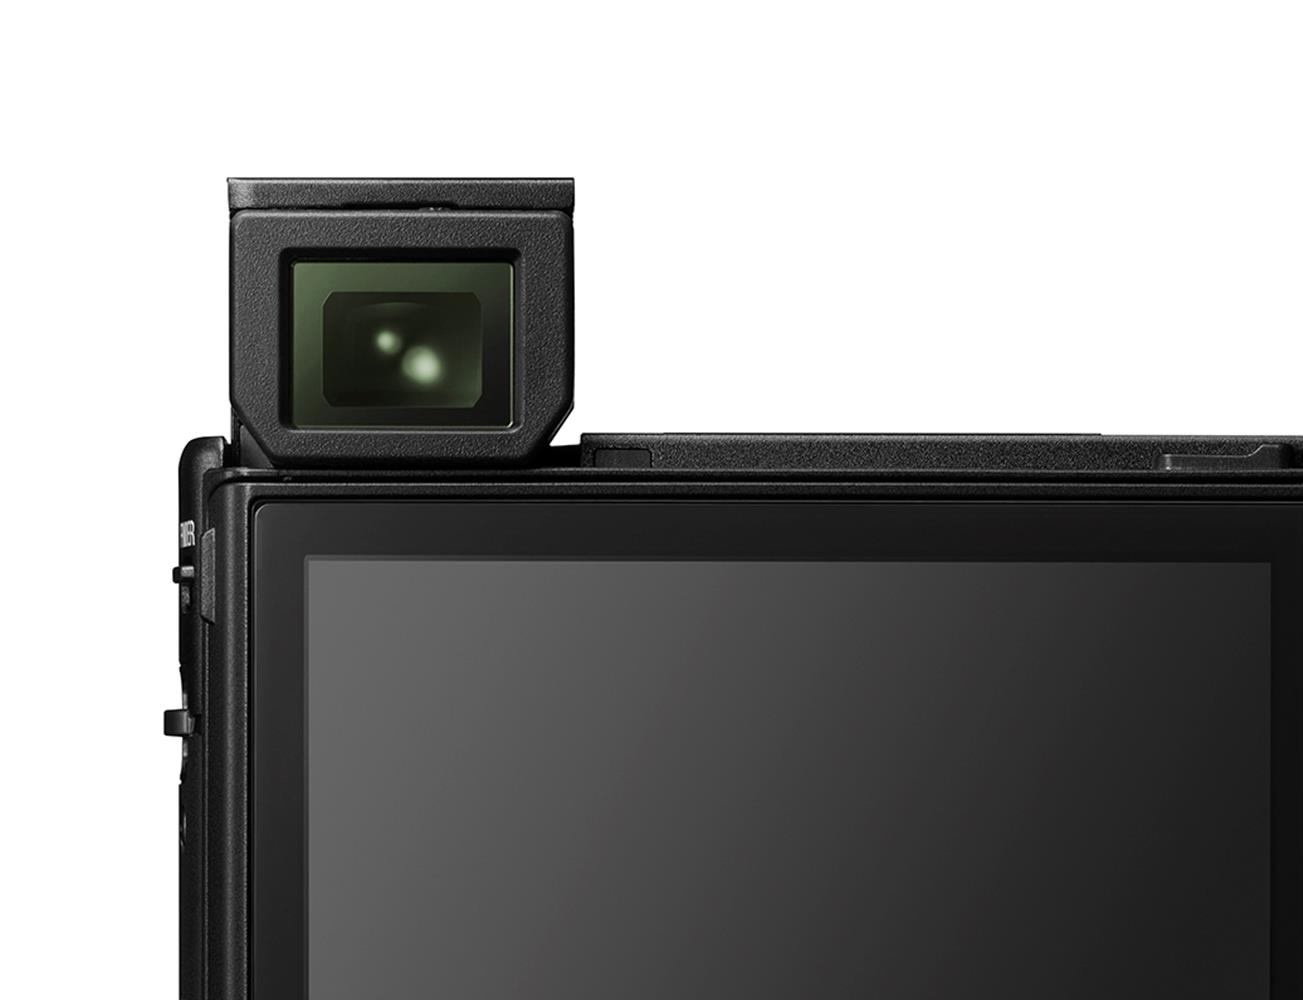 DSC-RX100M5_Finder-closeup.jpg